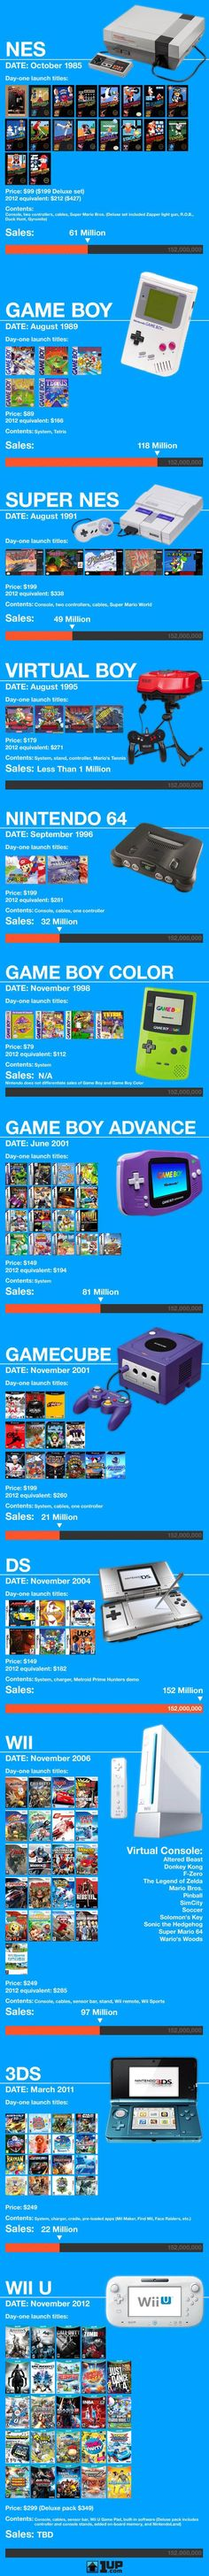 Nintendo through the years